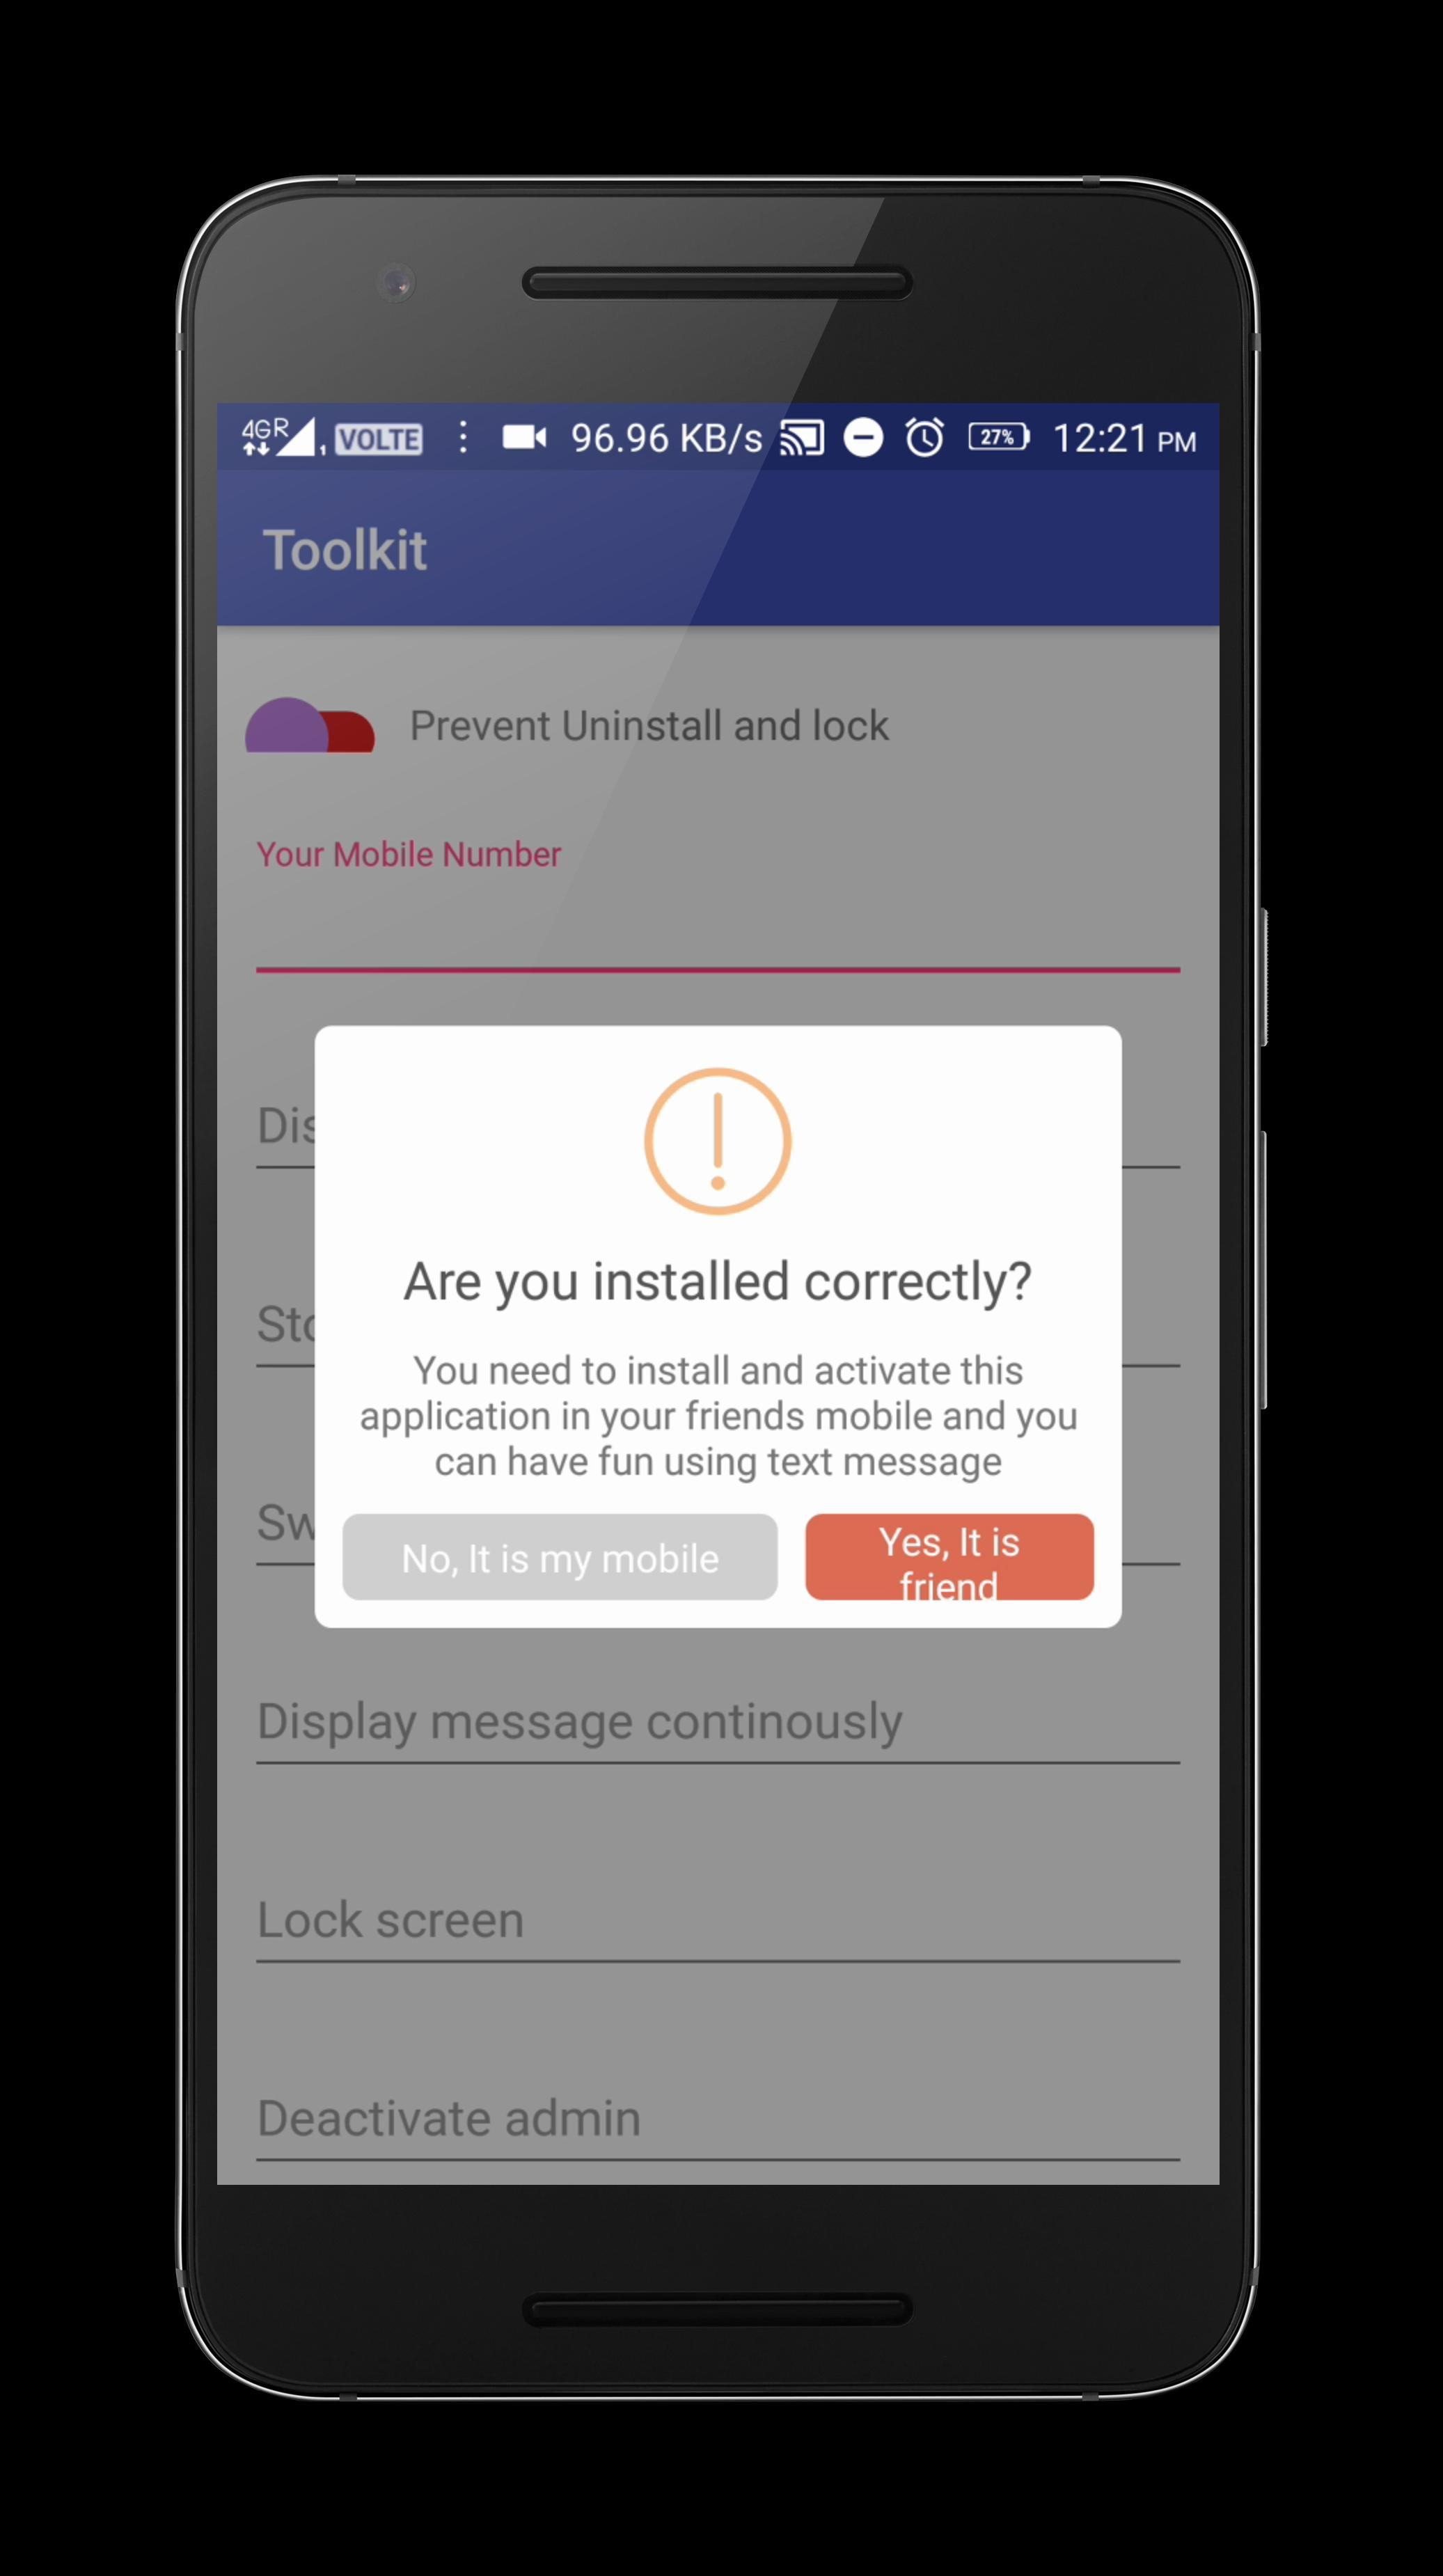 Hack friends phone for fun (PRANK) for Android - APK Download